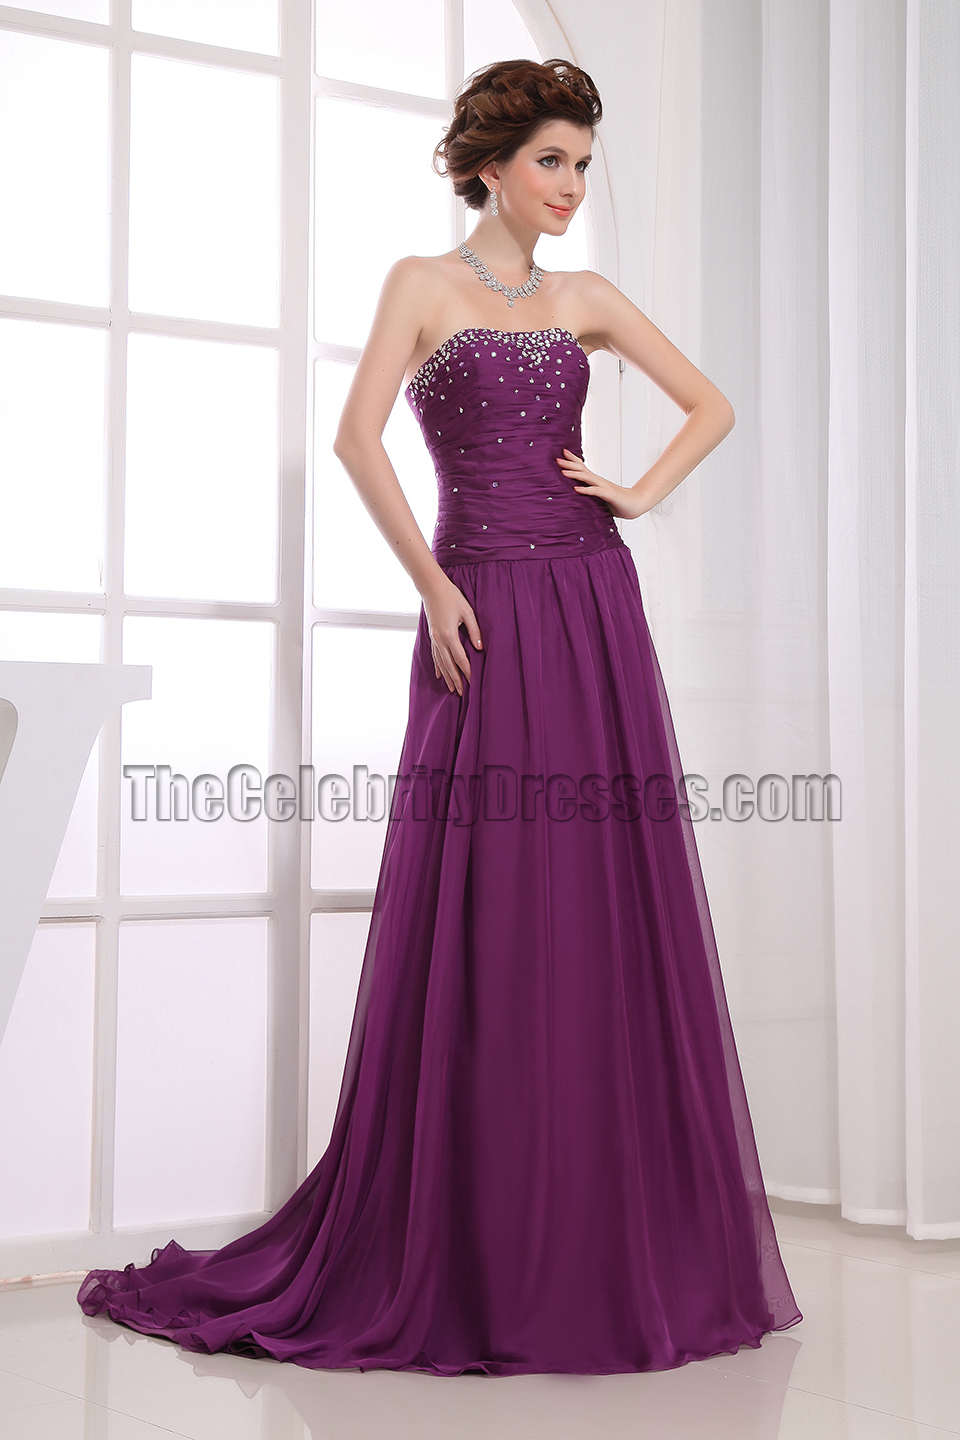 Dark Purple Homecoming Dresses Photo Album - Watch Out, There's a ...